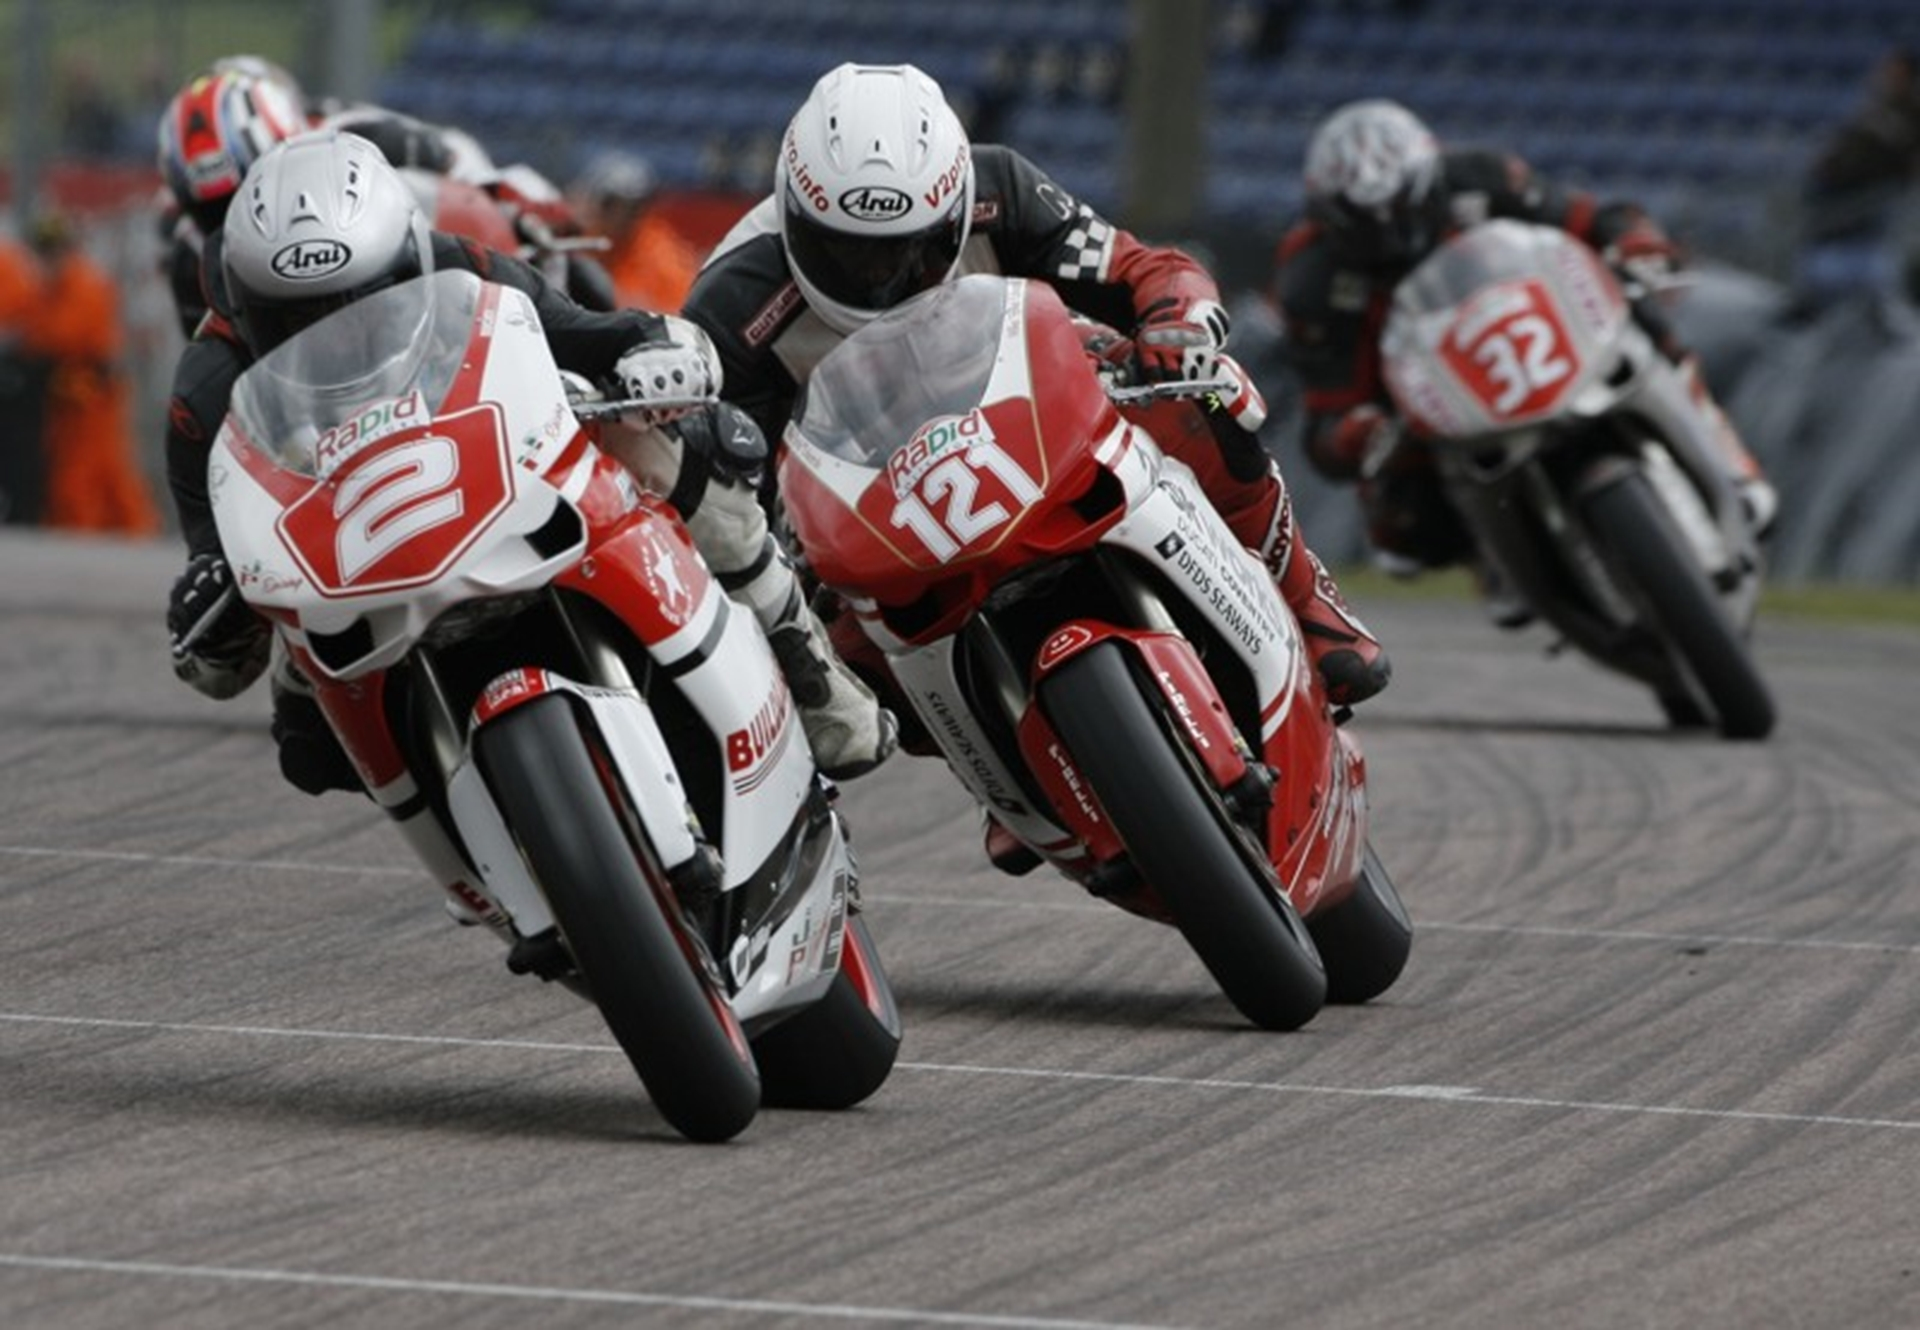 The 848 Challenge in 2011 was renowned for its close racing